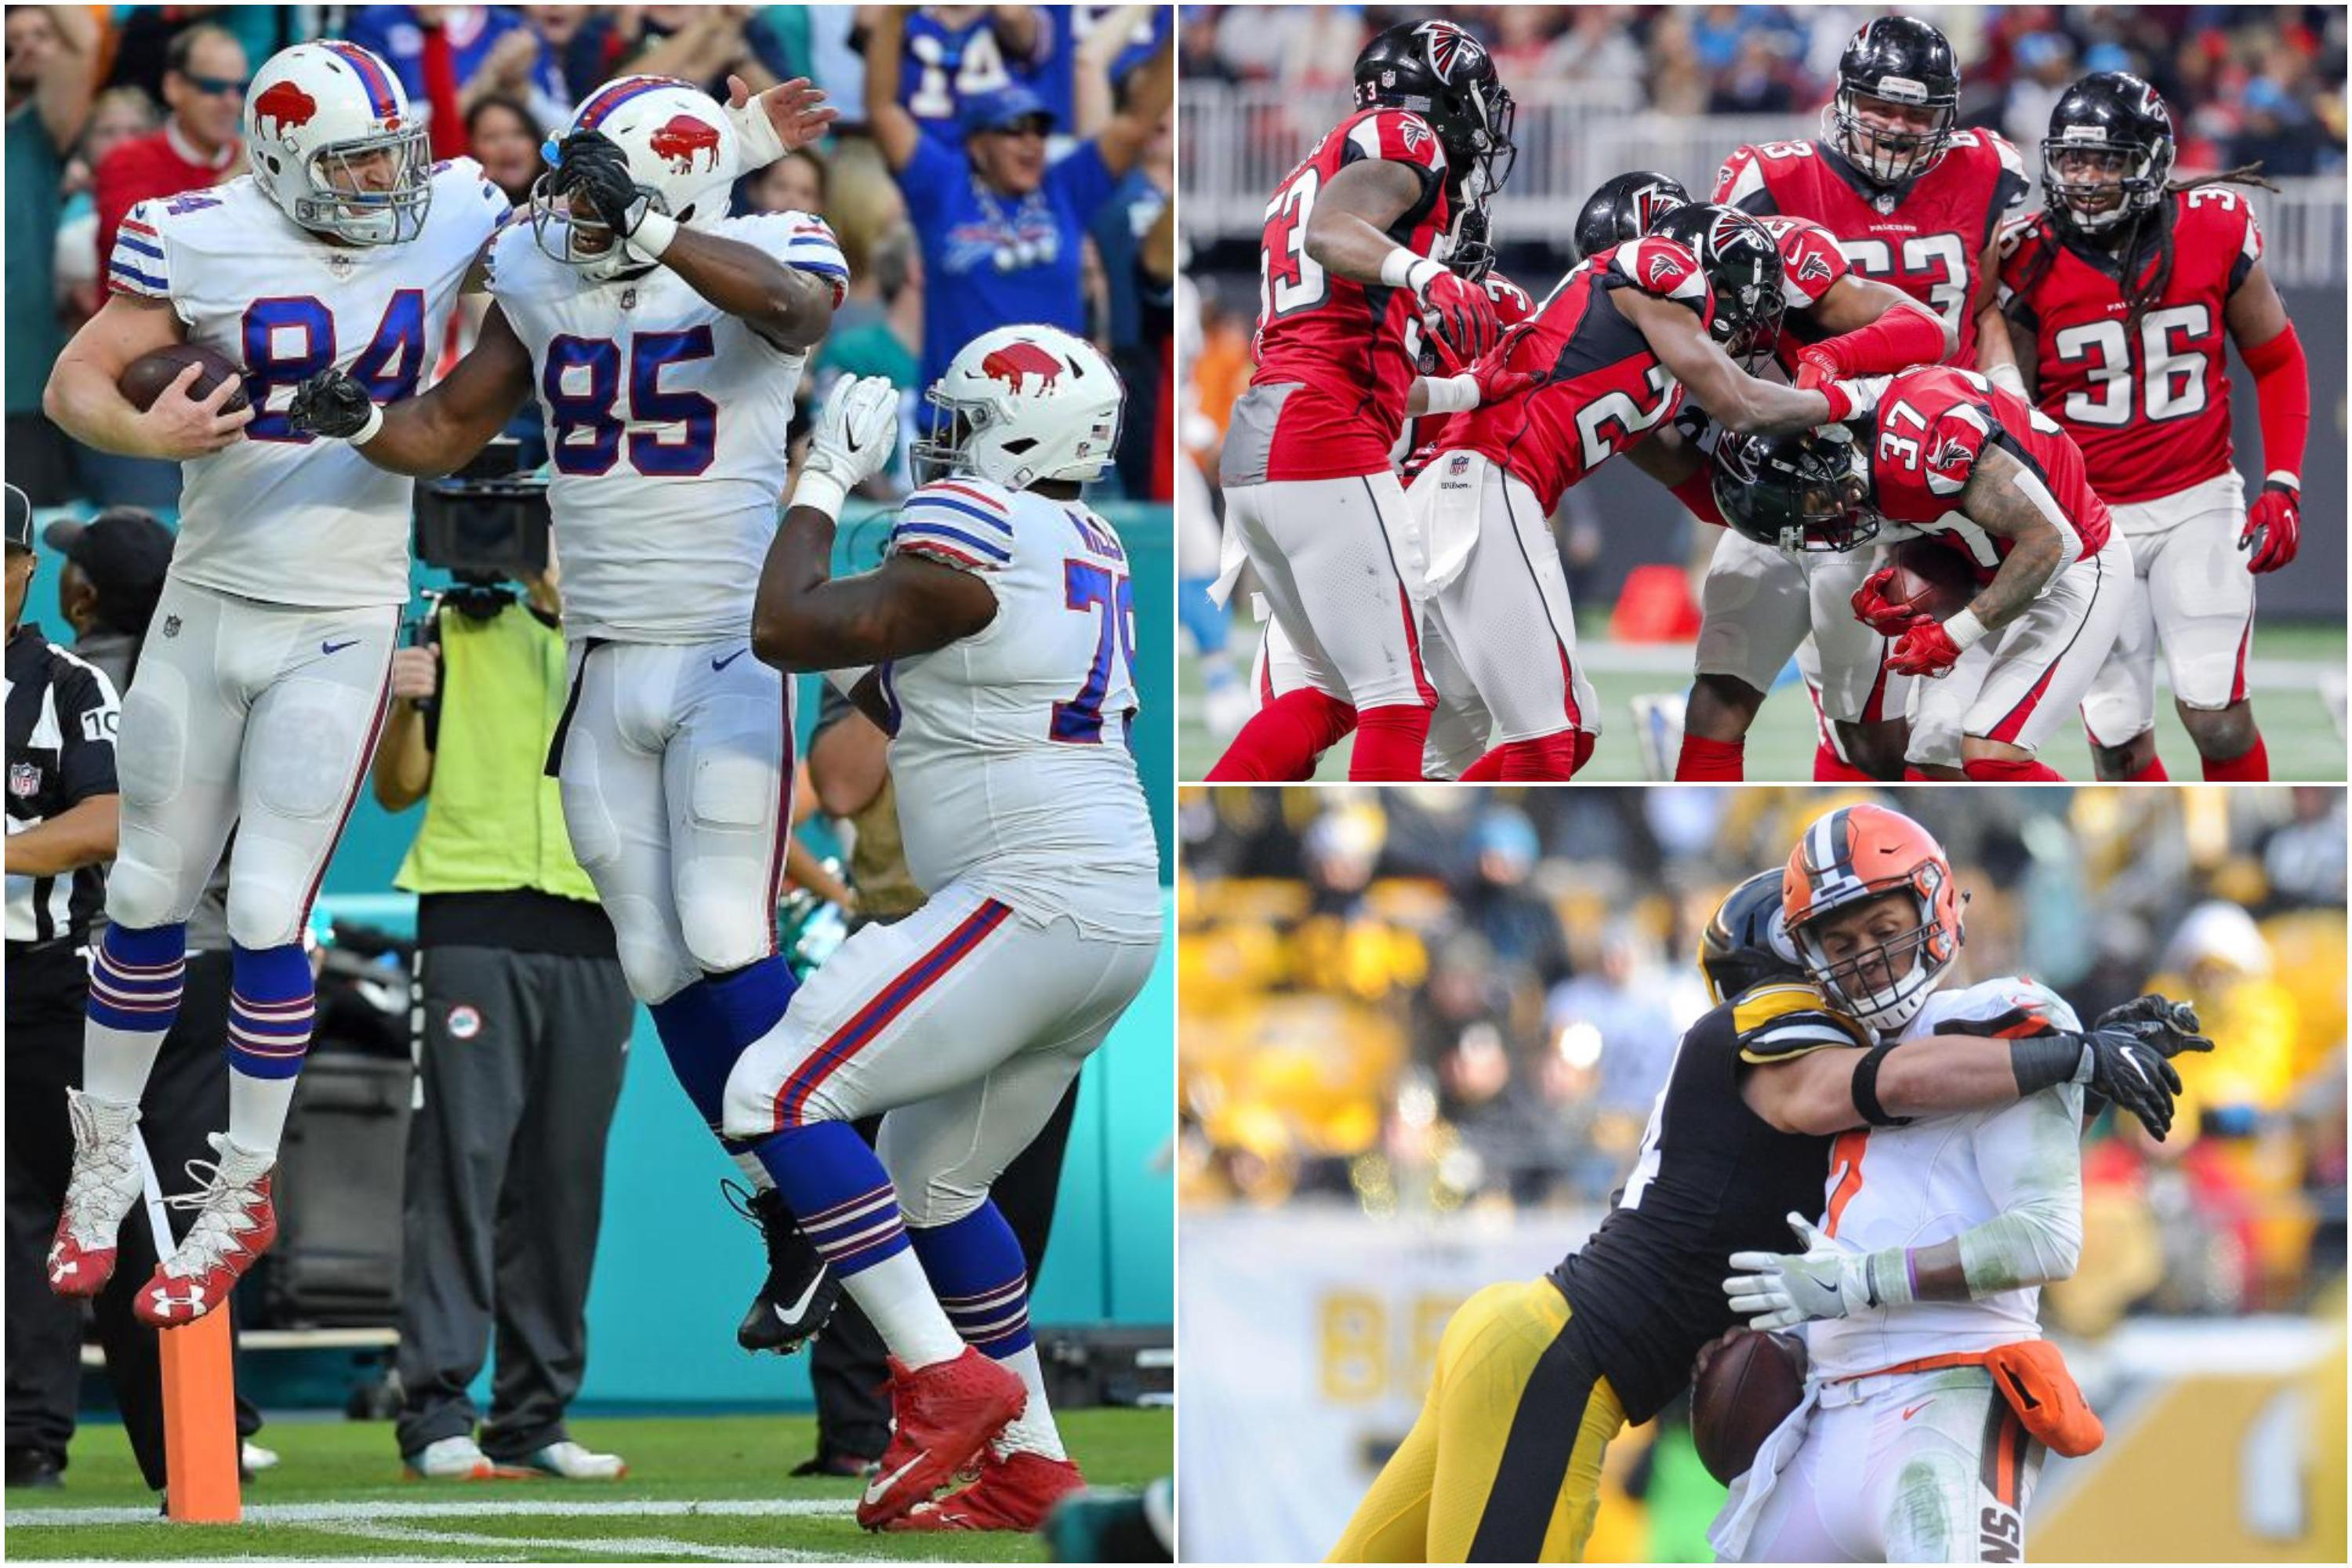 NFL week 17 round-up: Buffalo Bills end playoff drought, Atlanta Falcons and Tennessee Titans qualify and sorry Cleveland Browns end 0-16